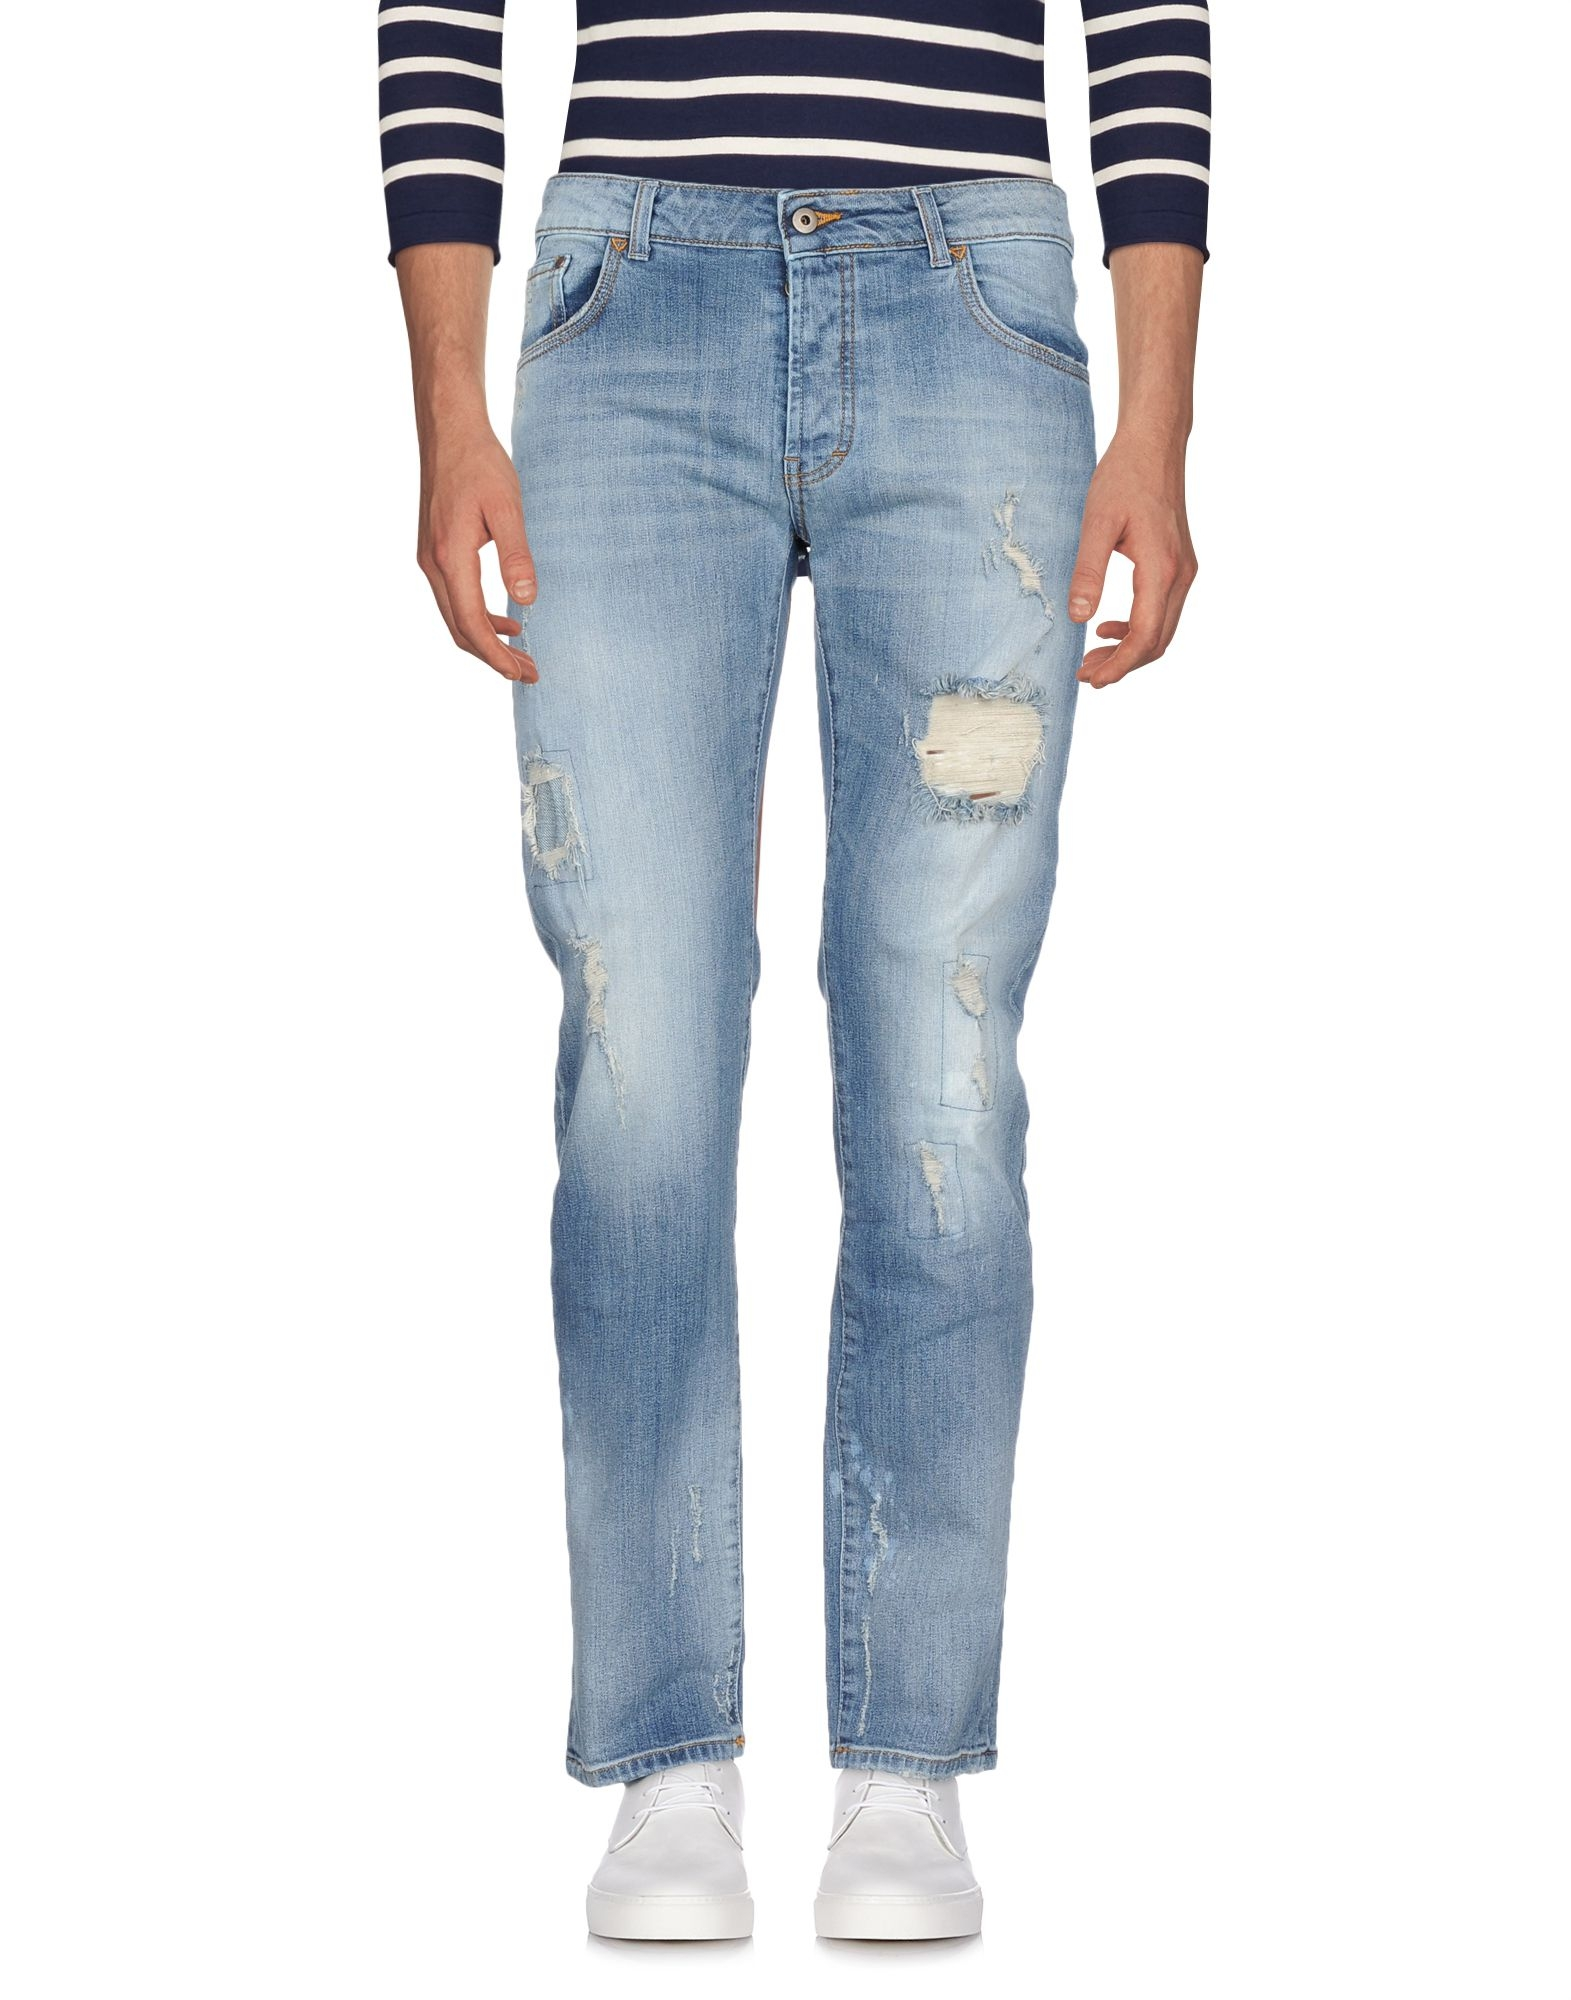 KOON DENIM Τζιν